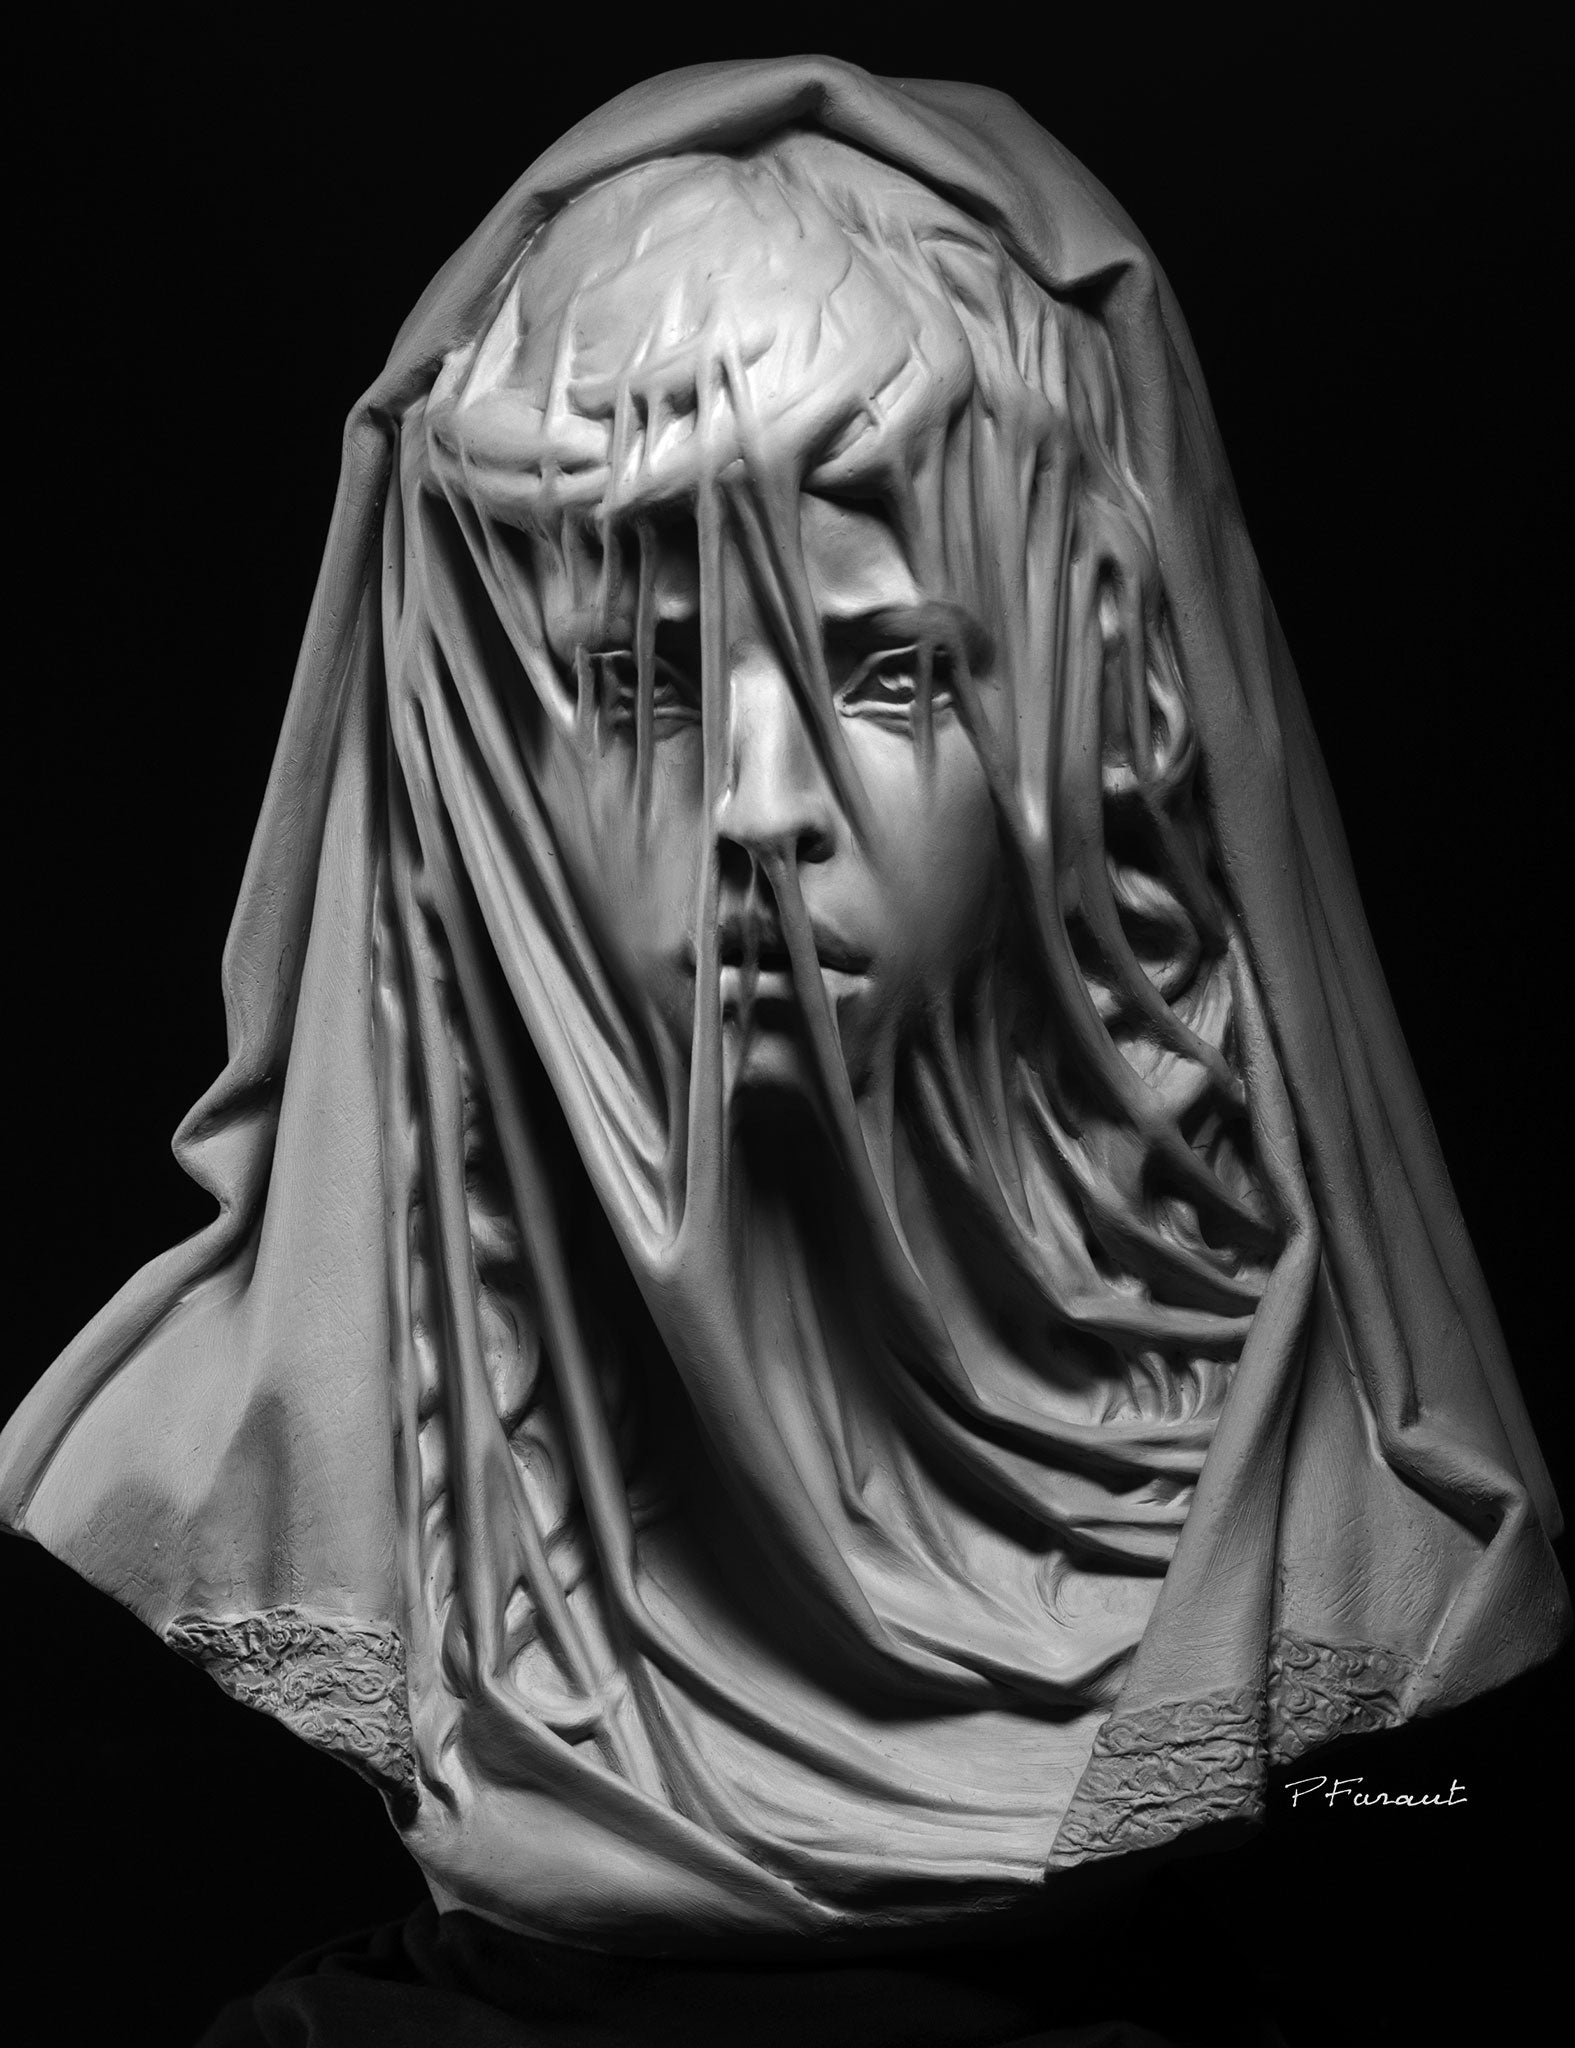 sculpture of child with translucent veil